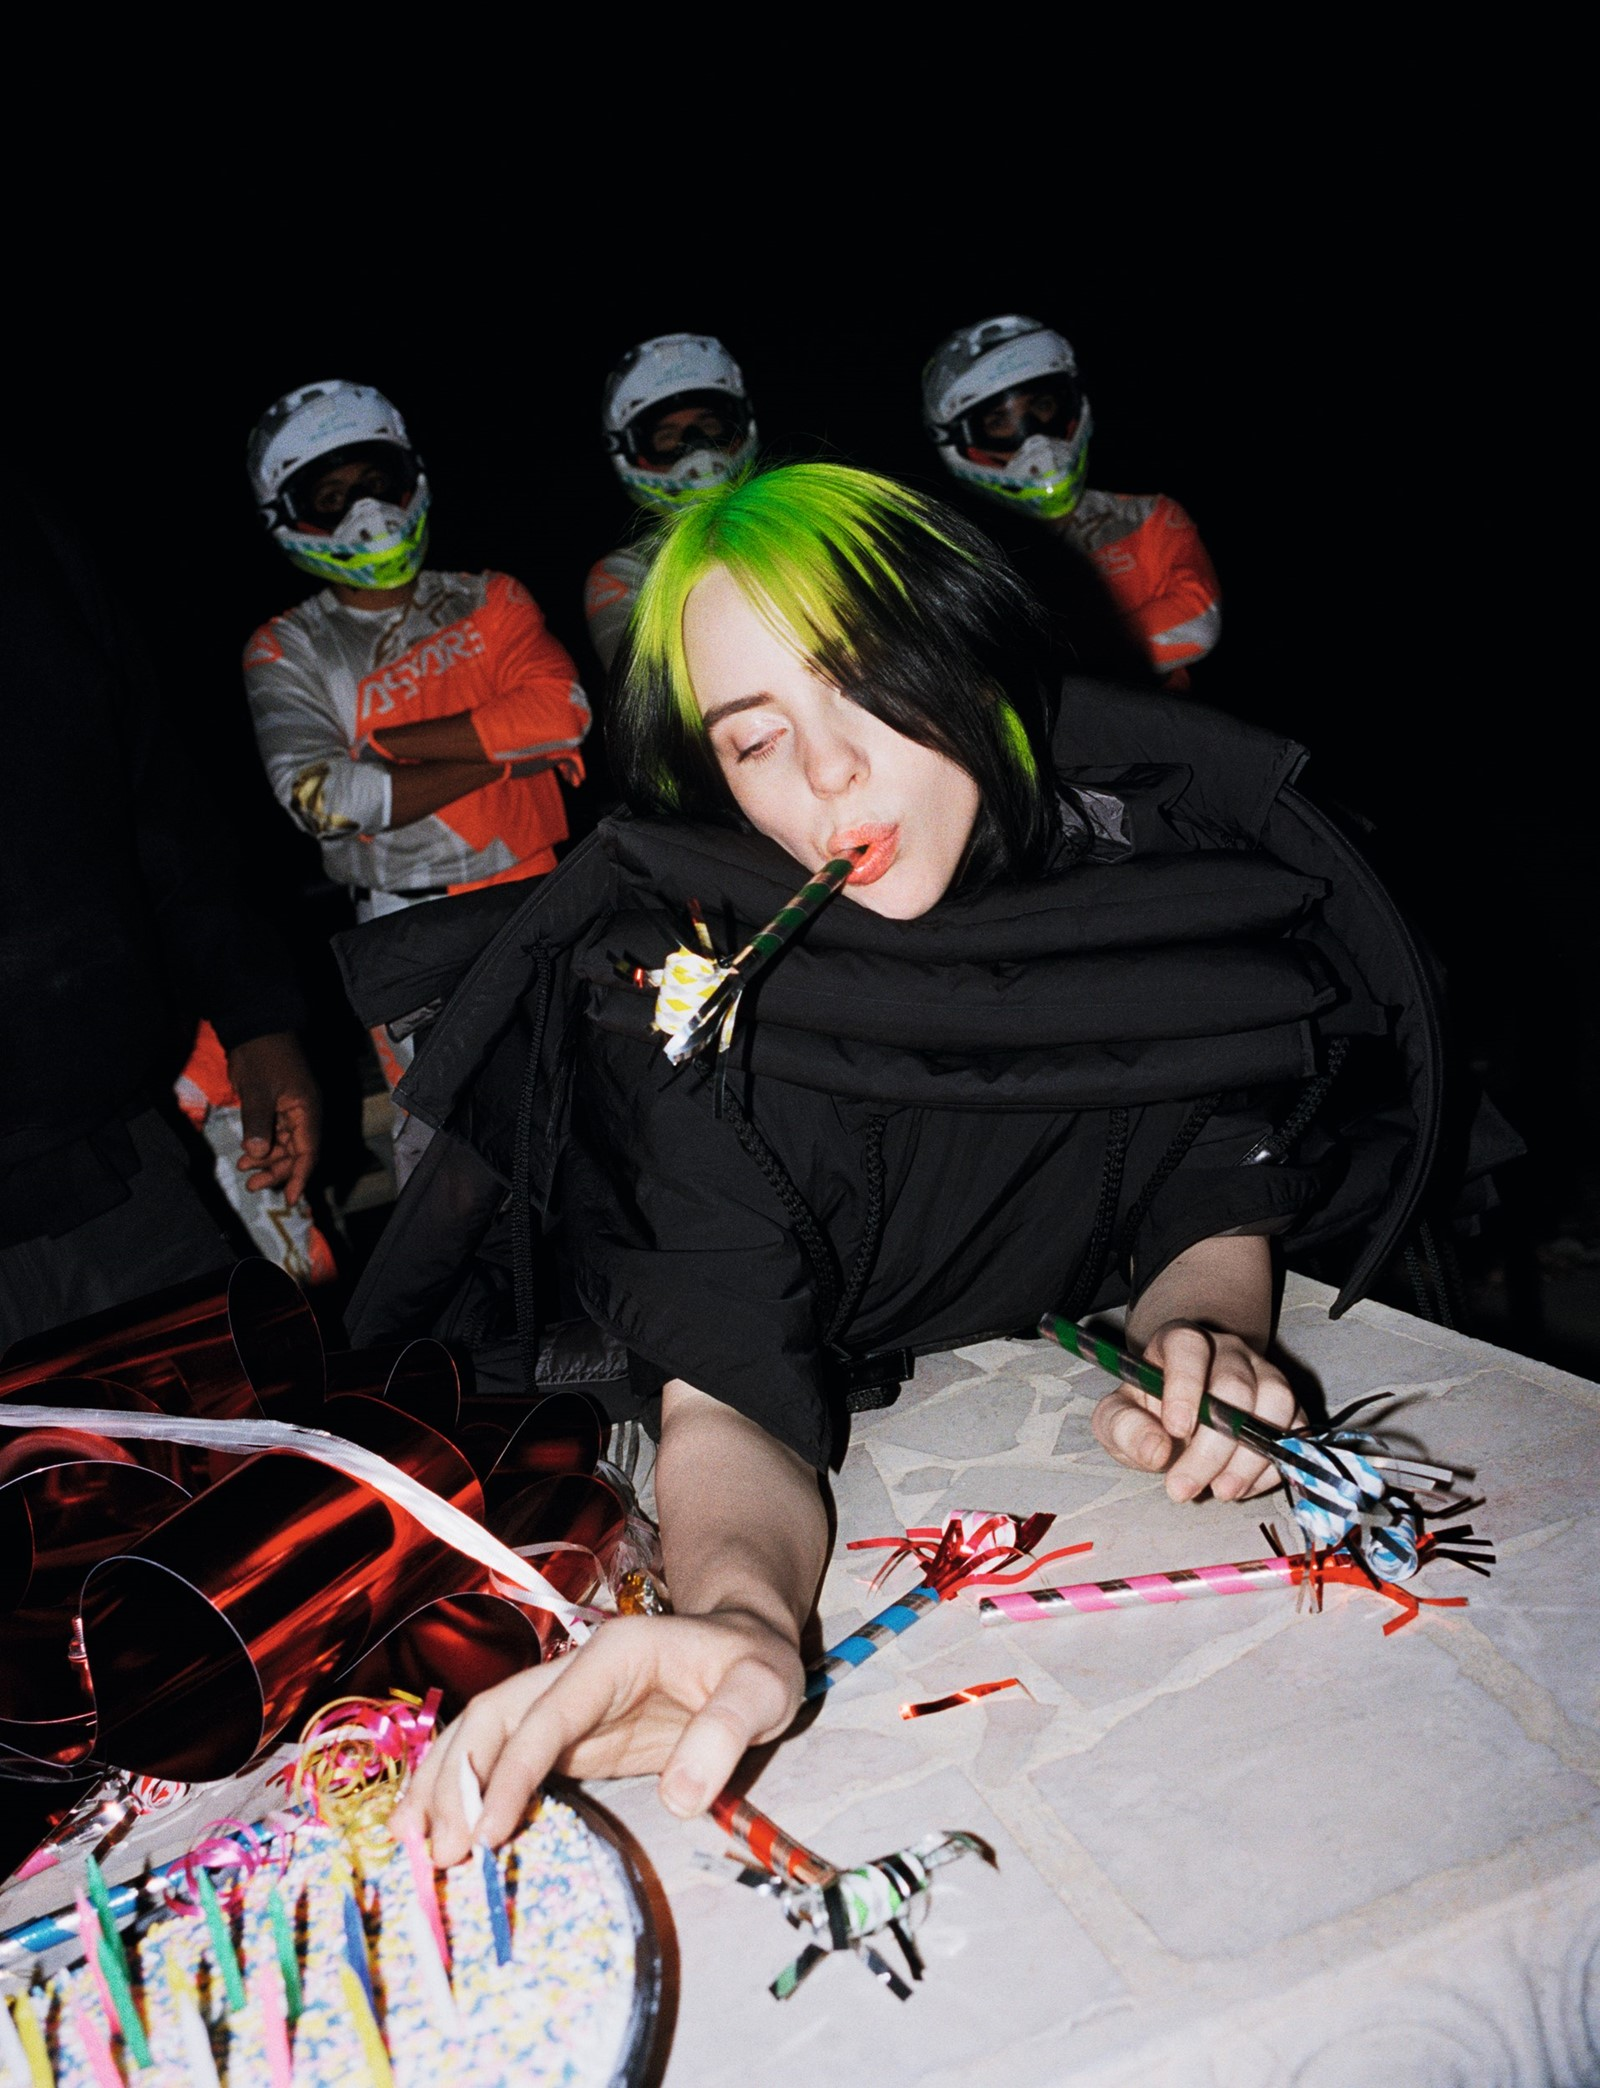 Billie Eilish Hits Accelerate Dazed